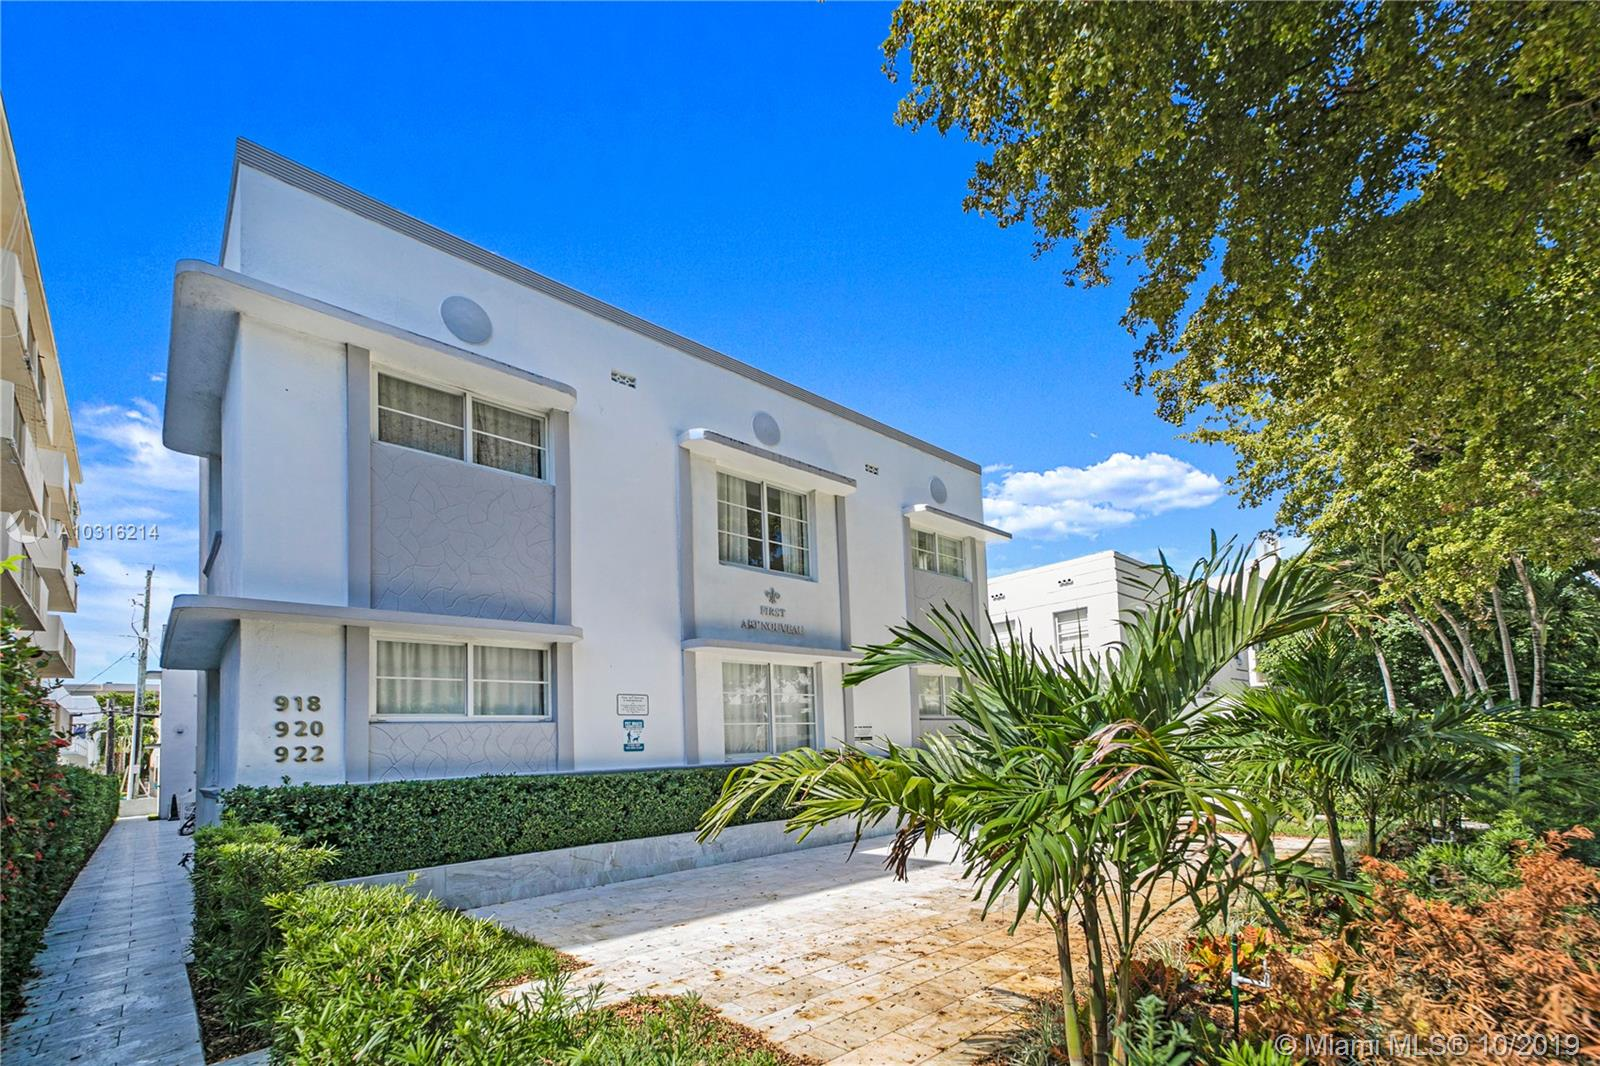 920 Jefferson Ave Unit 5, Miami Beach, Florida 33139